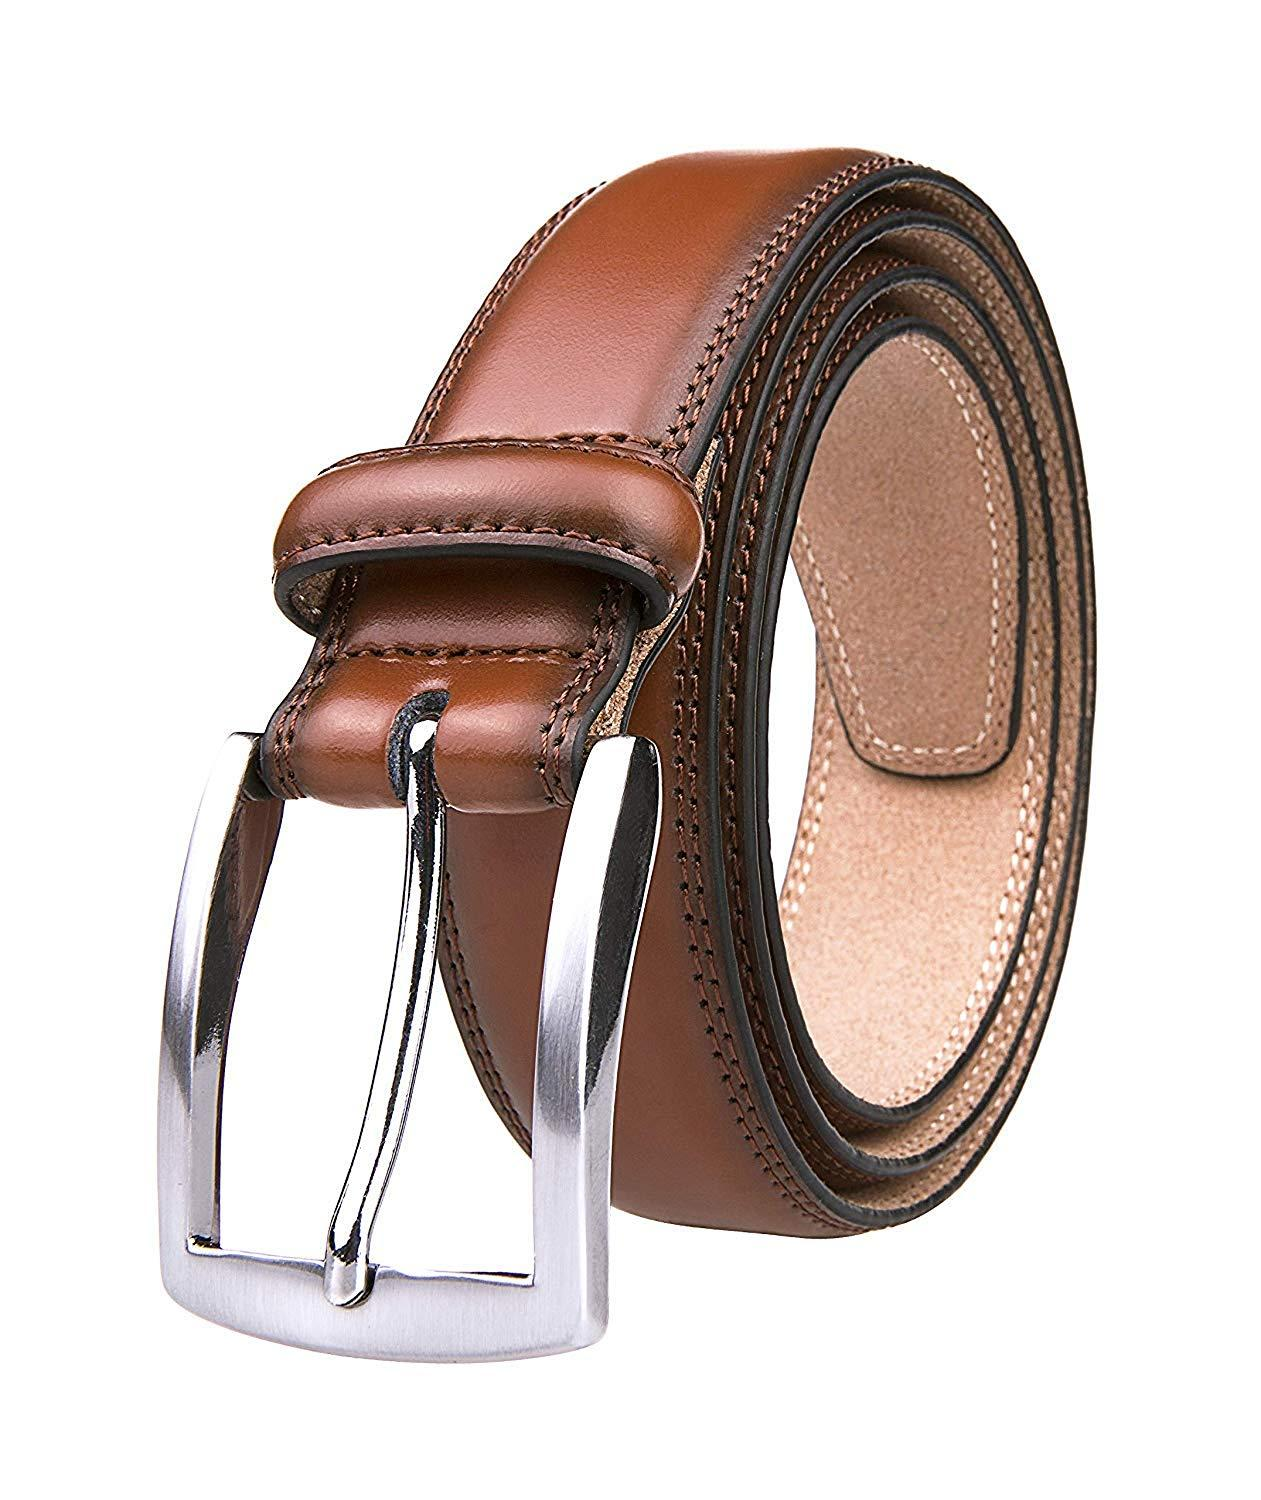 a859d559d21 Men s Genuine Leather Dress Belts Made with Premium Quality ...